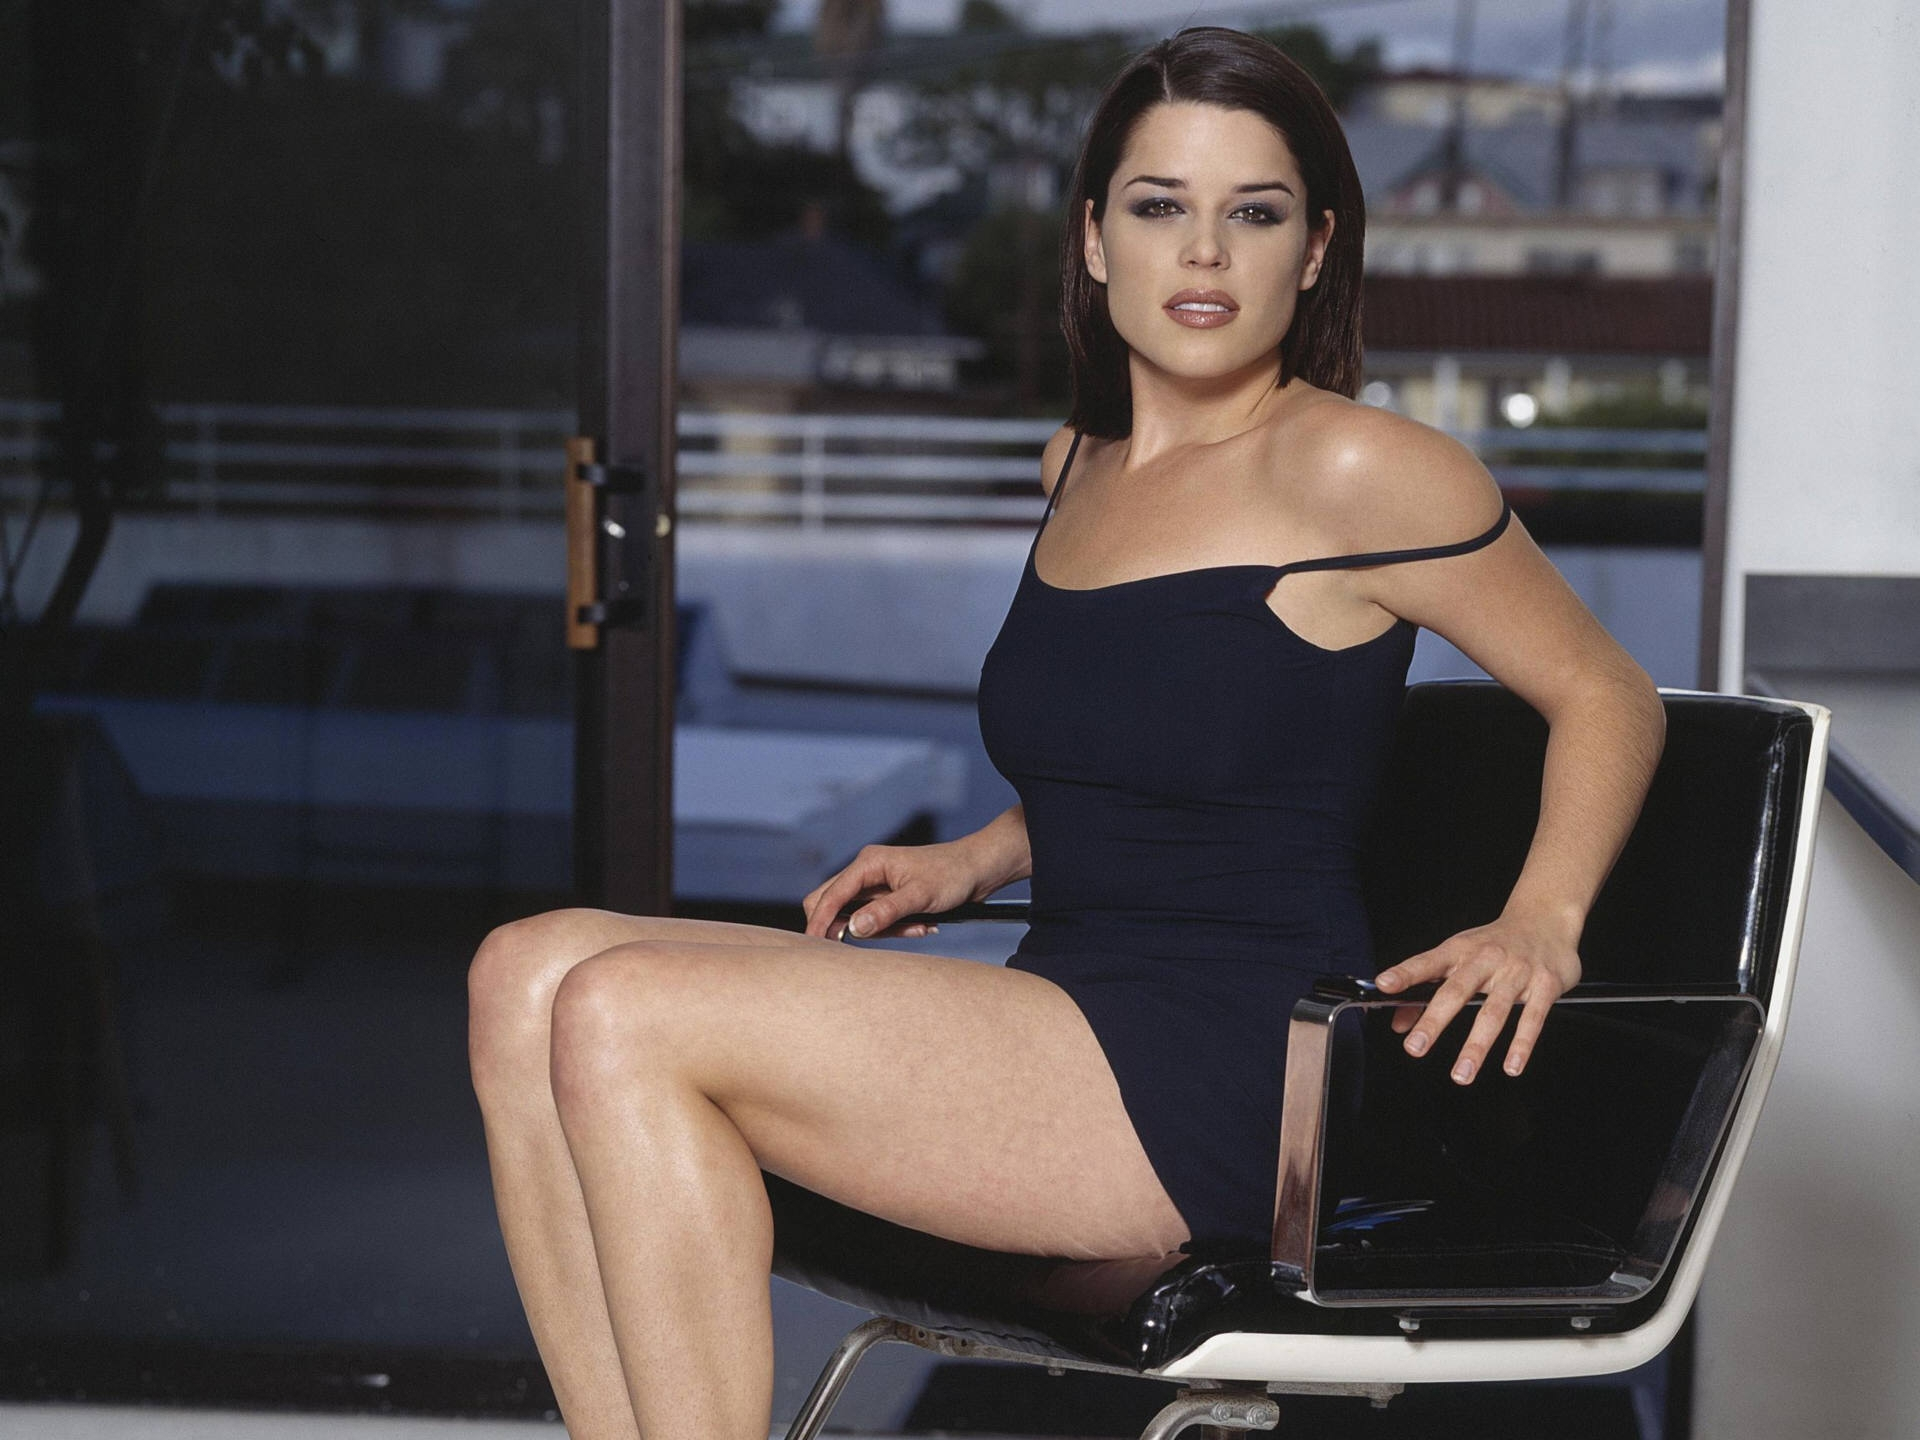 neve campbell wallpapers images photos pictures backgrounds. Black Bedroom Furniture Sets. Home Design Ideas